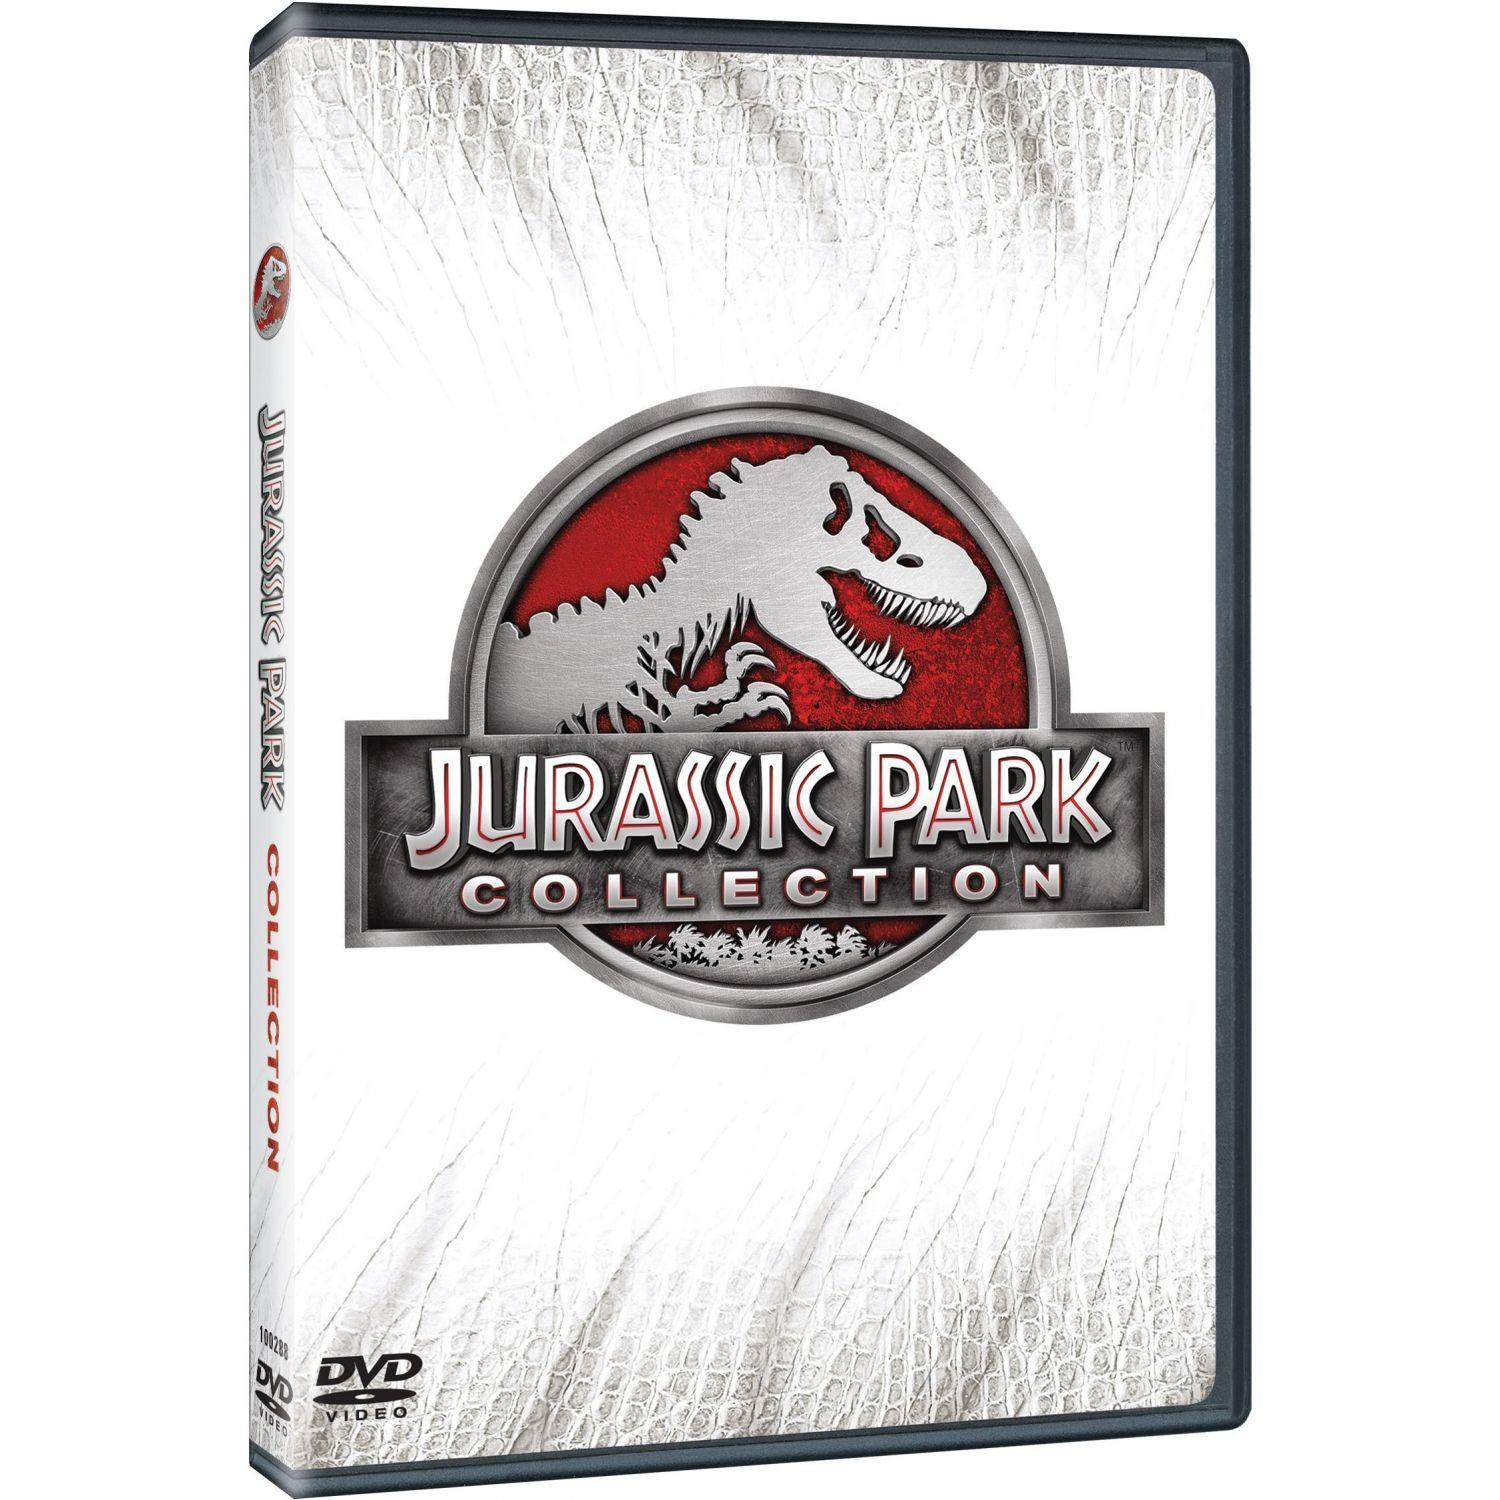 JURASSIC PARK COLLECTION (4DVD)